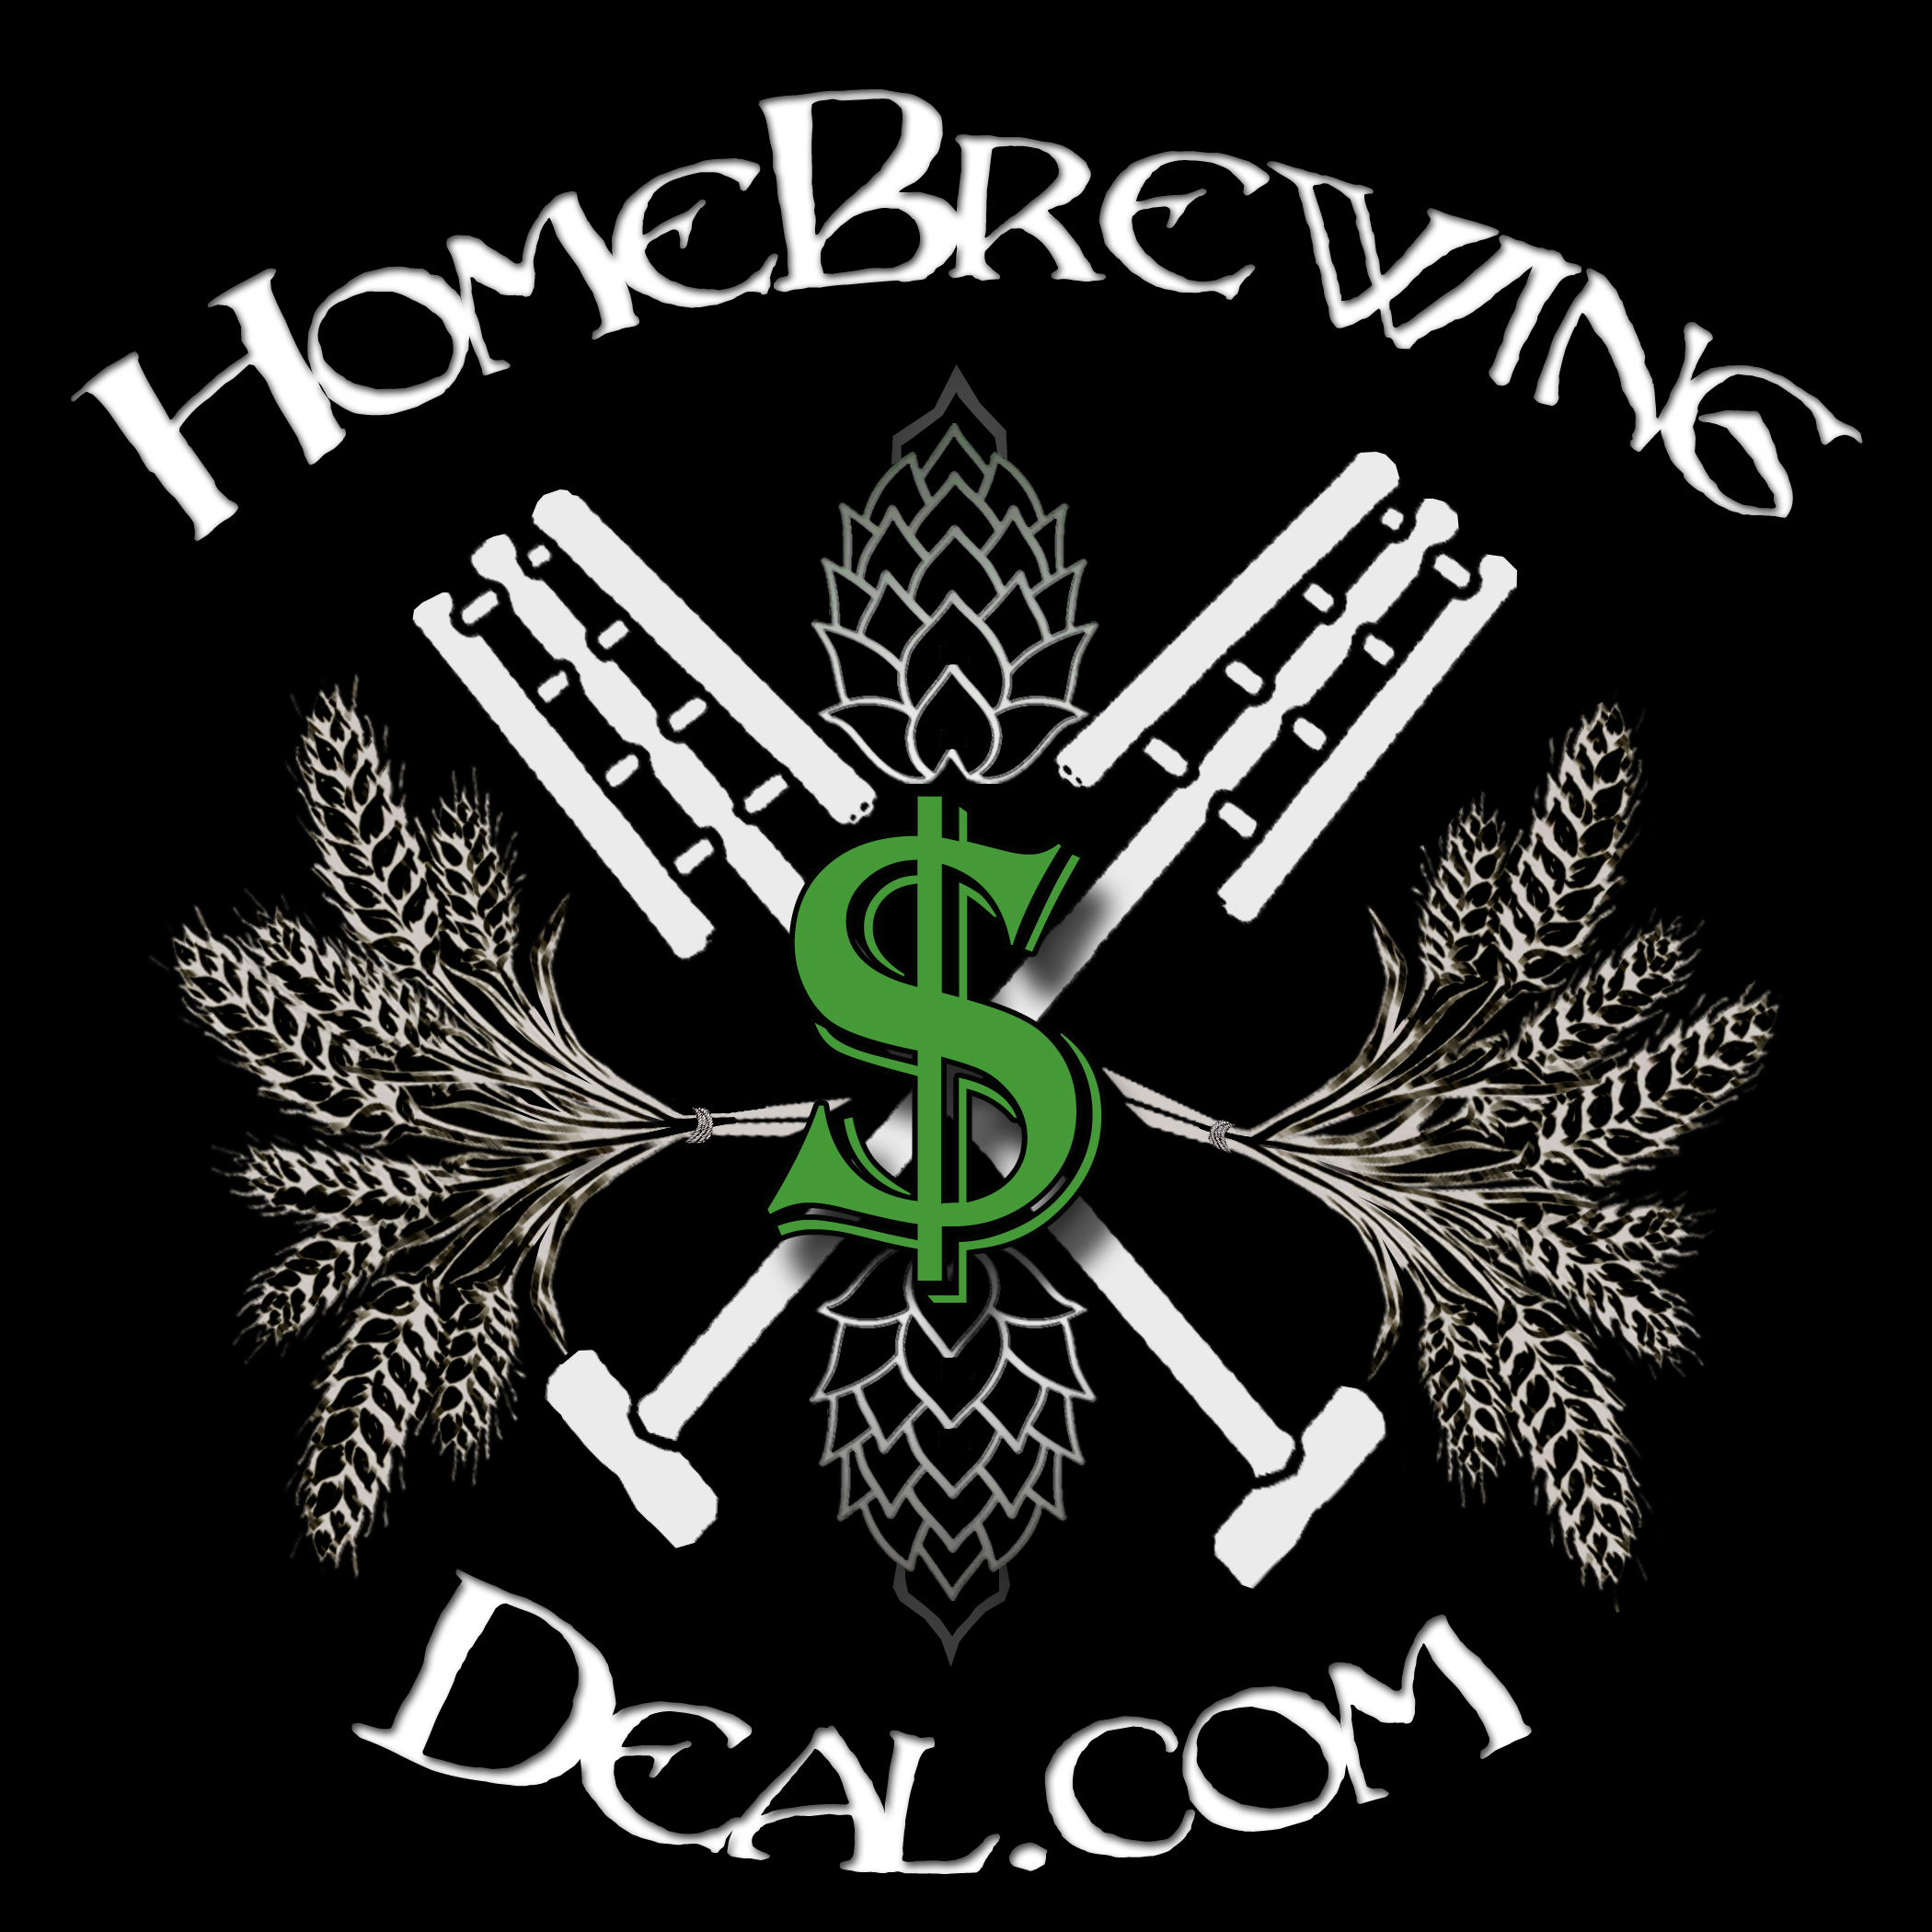 Homebrewing Deal is your source for all the best home brewing promo codes, homebrew coupons and home beer brewing deals! If you are looking for promo codes for MoreBeer, Homebrew Supply, Williams Brewing, Northern Brewer and Midwest Supplies, you have come to the right place!